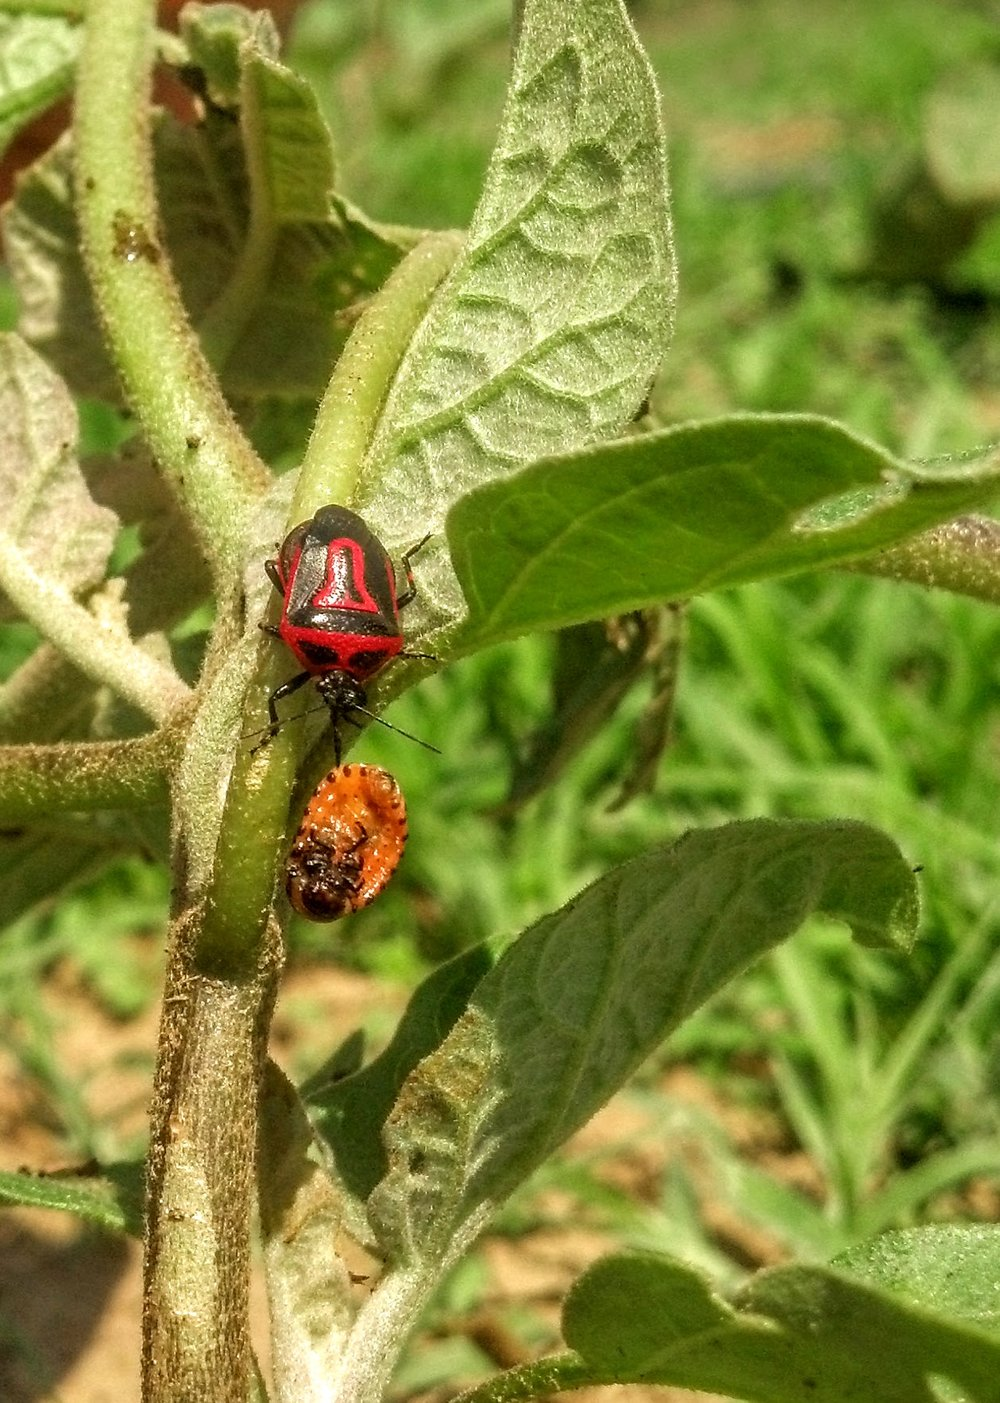 Adult  Perillus bioculatus  feeds on large Colorado potato beetle larvae on eggplant.